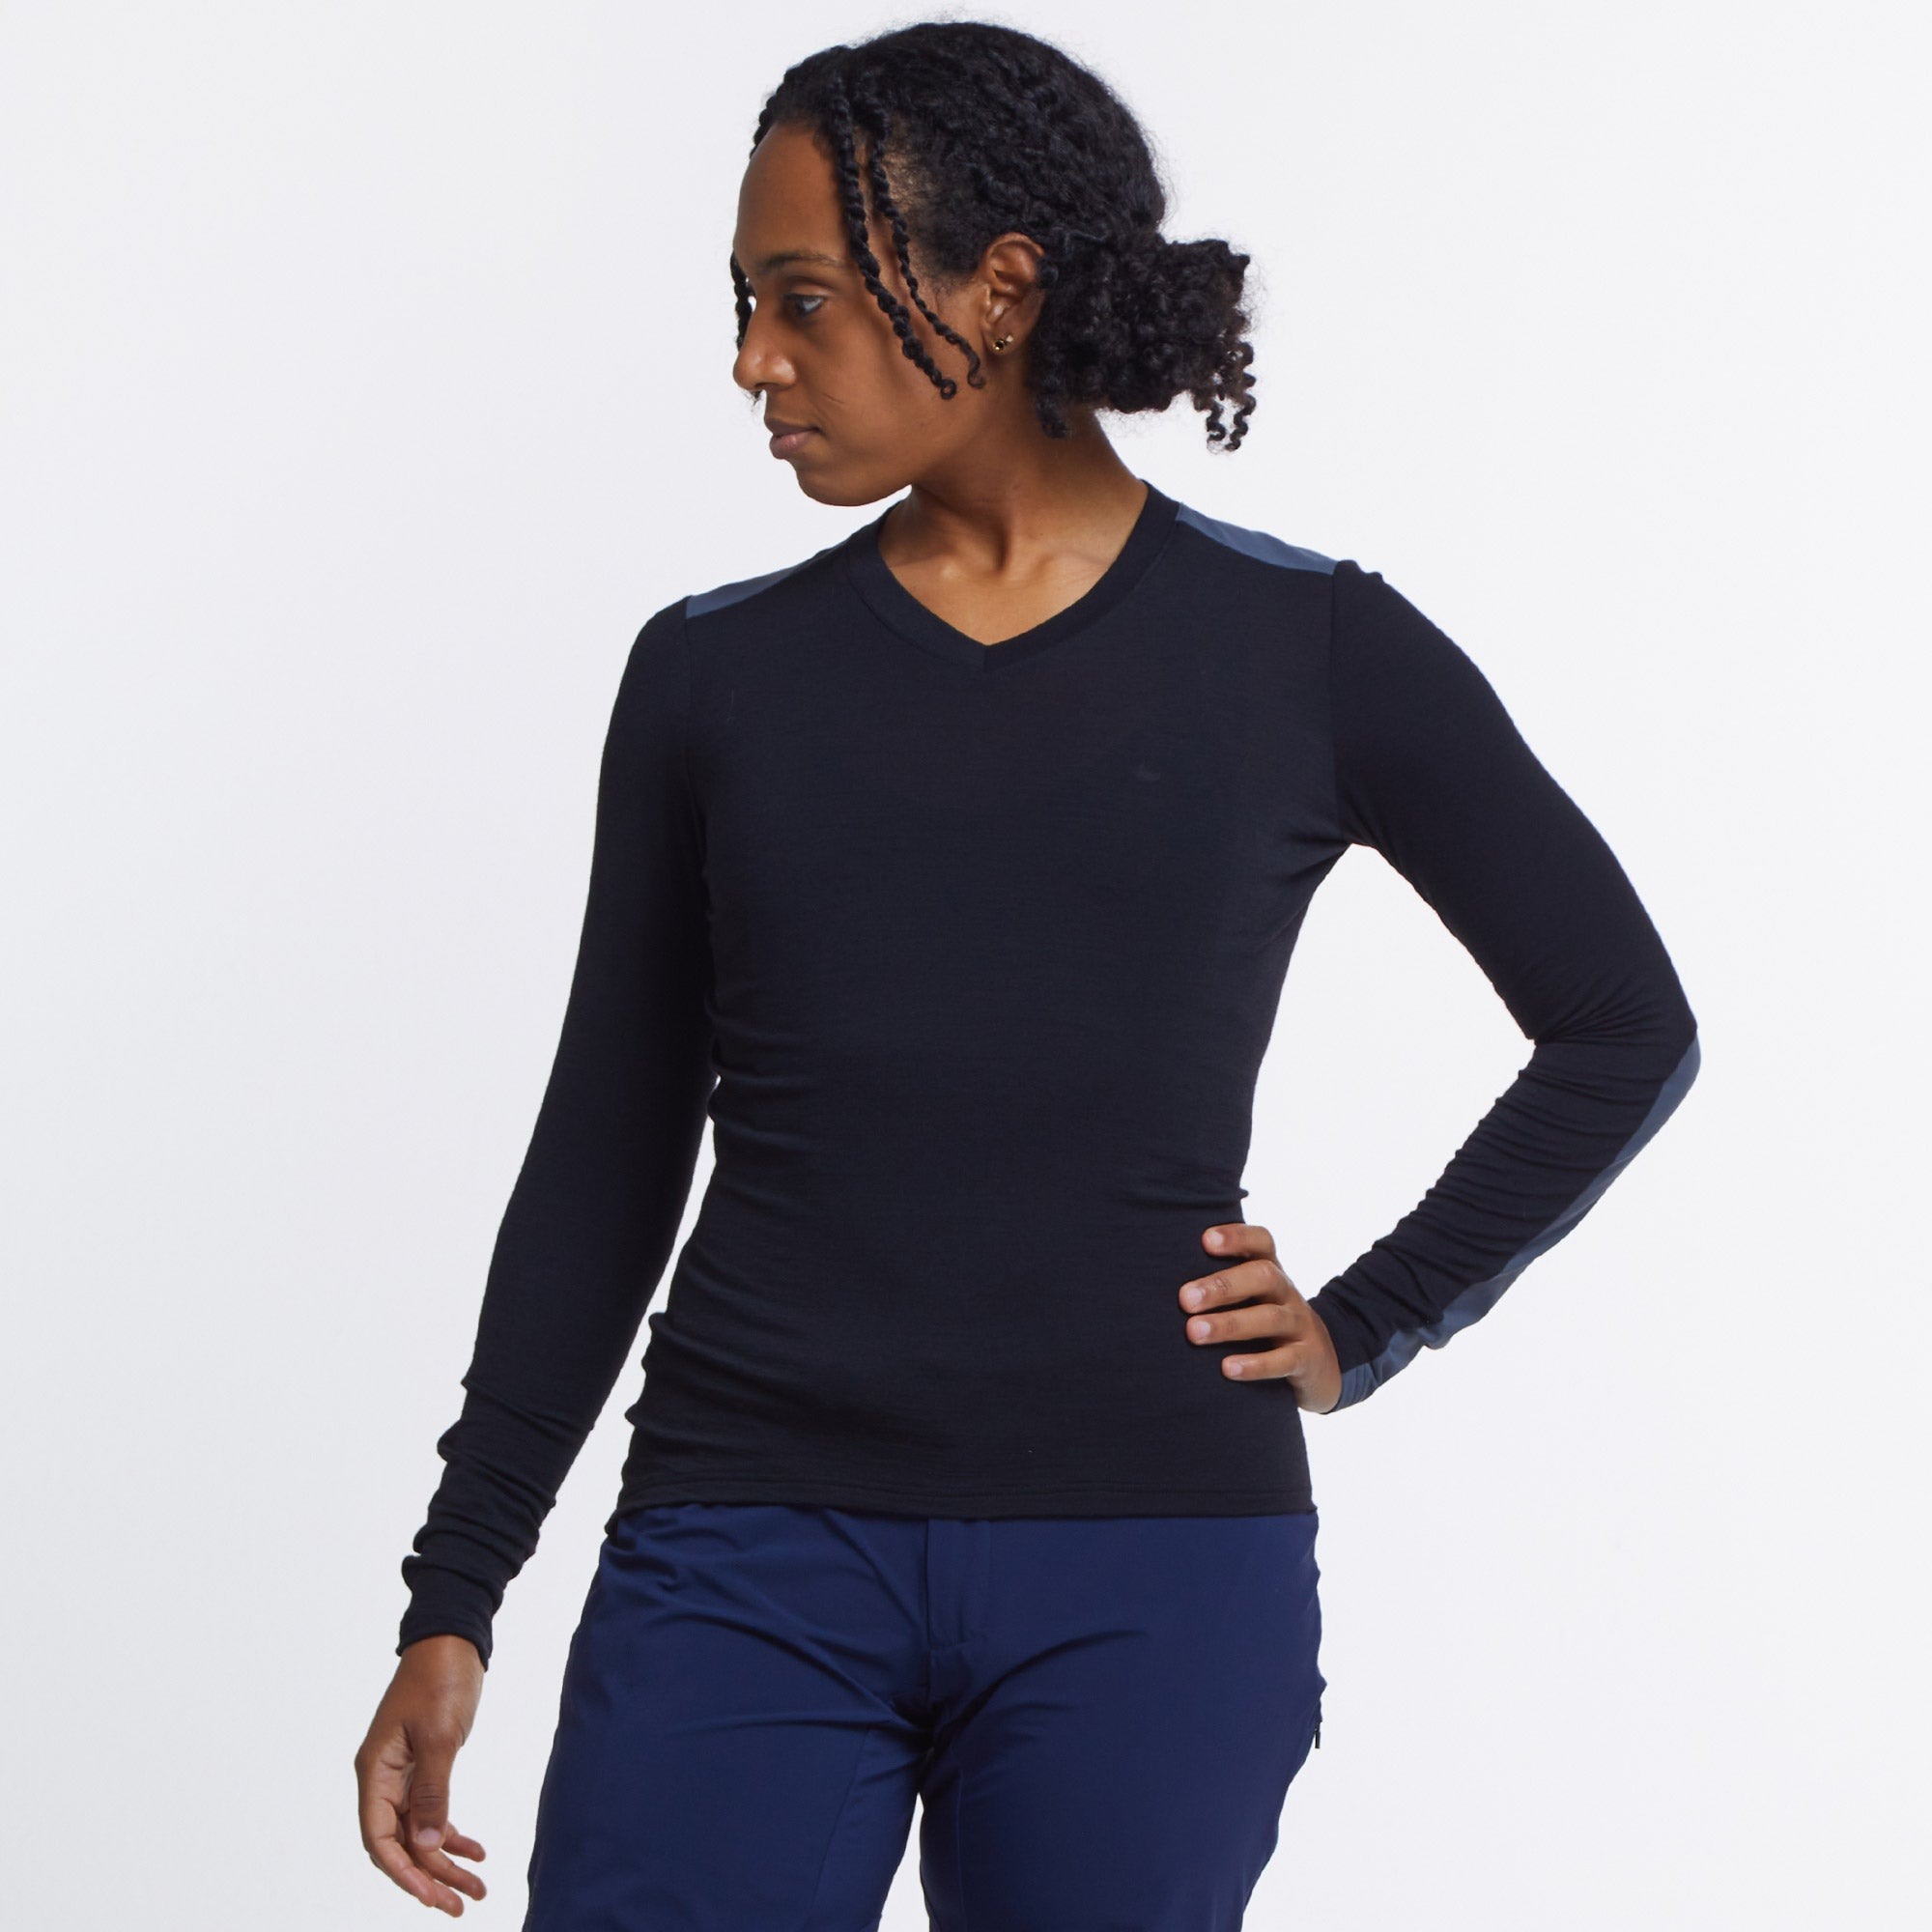 Women's Merino TRAIL Long Sleeve